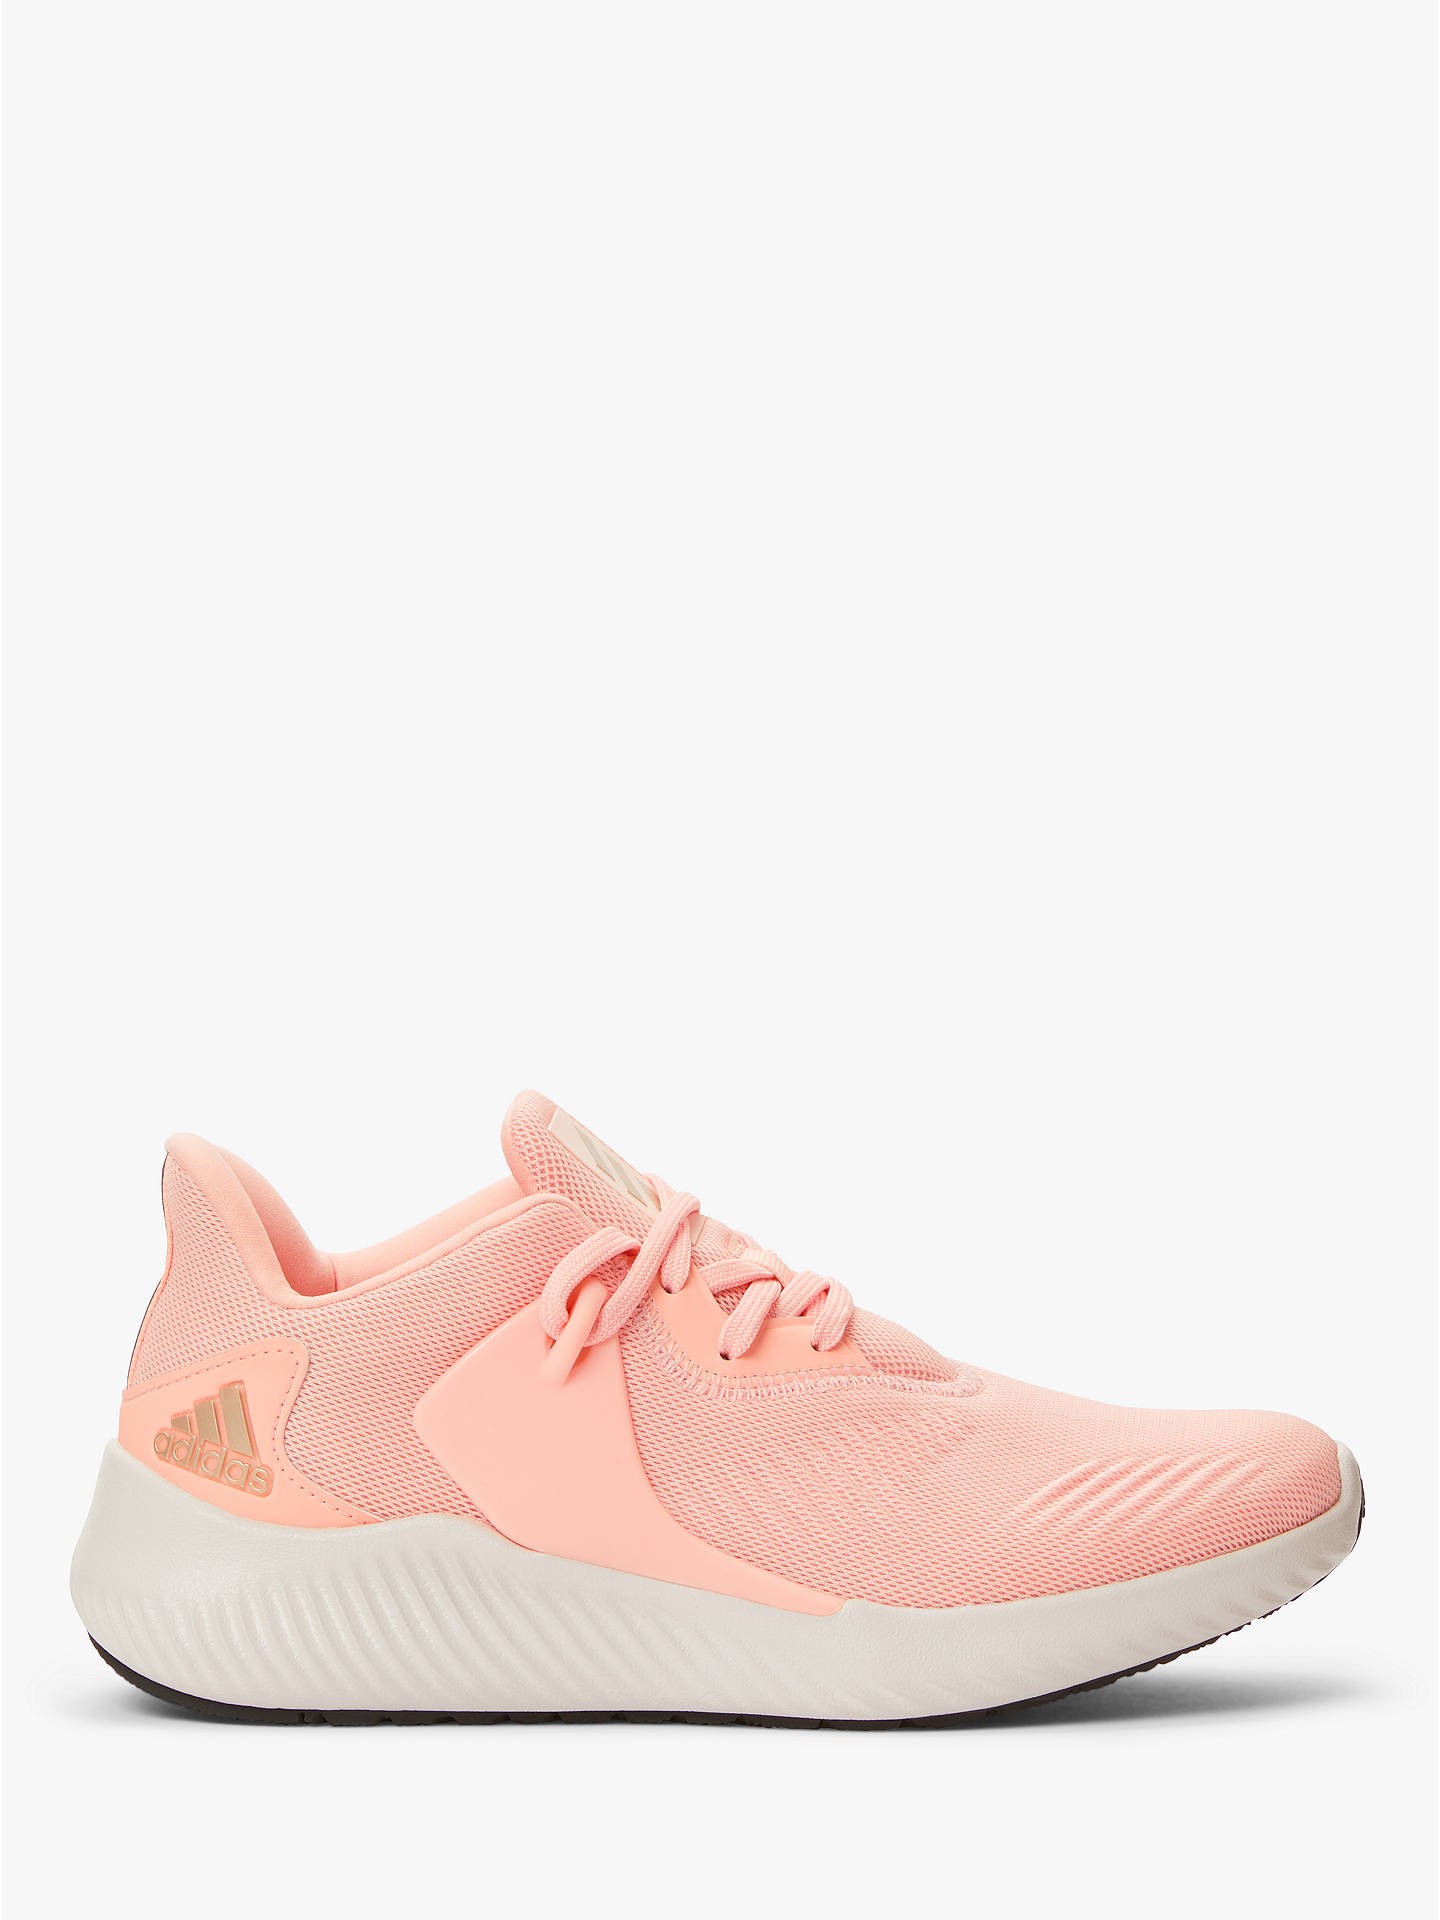 adidas Alphabounce RC 2.0 Women's Running Shoes